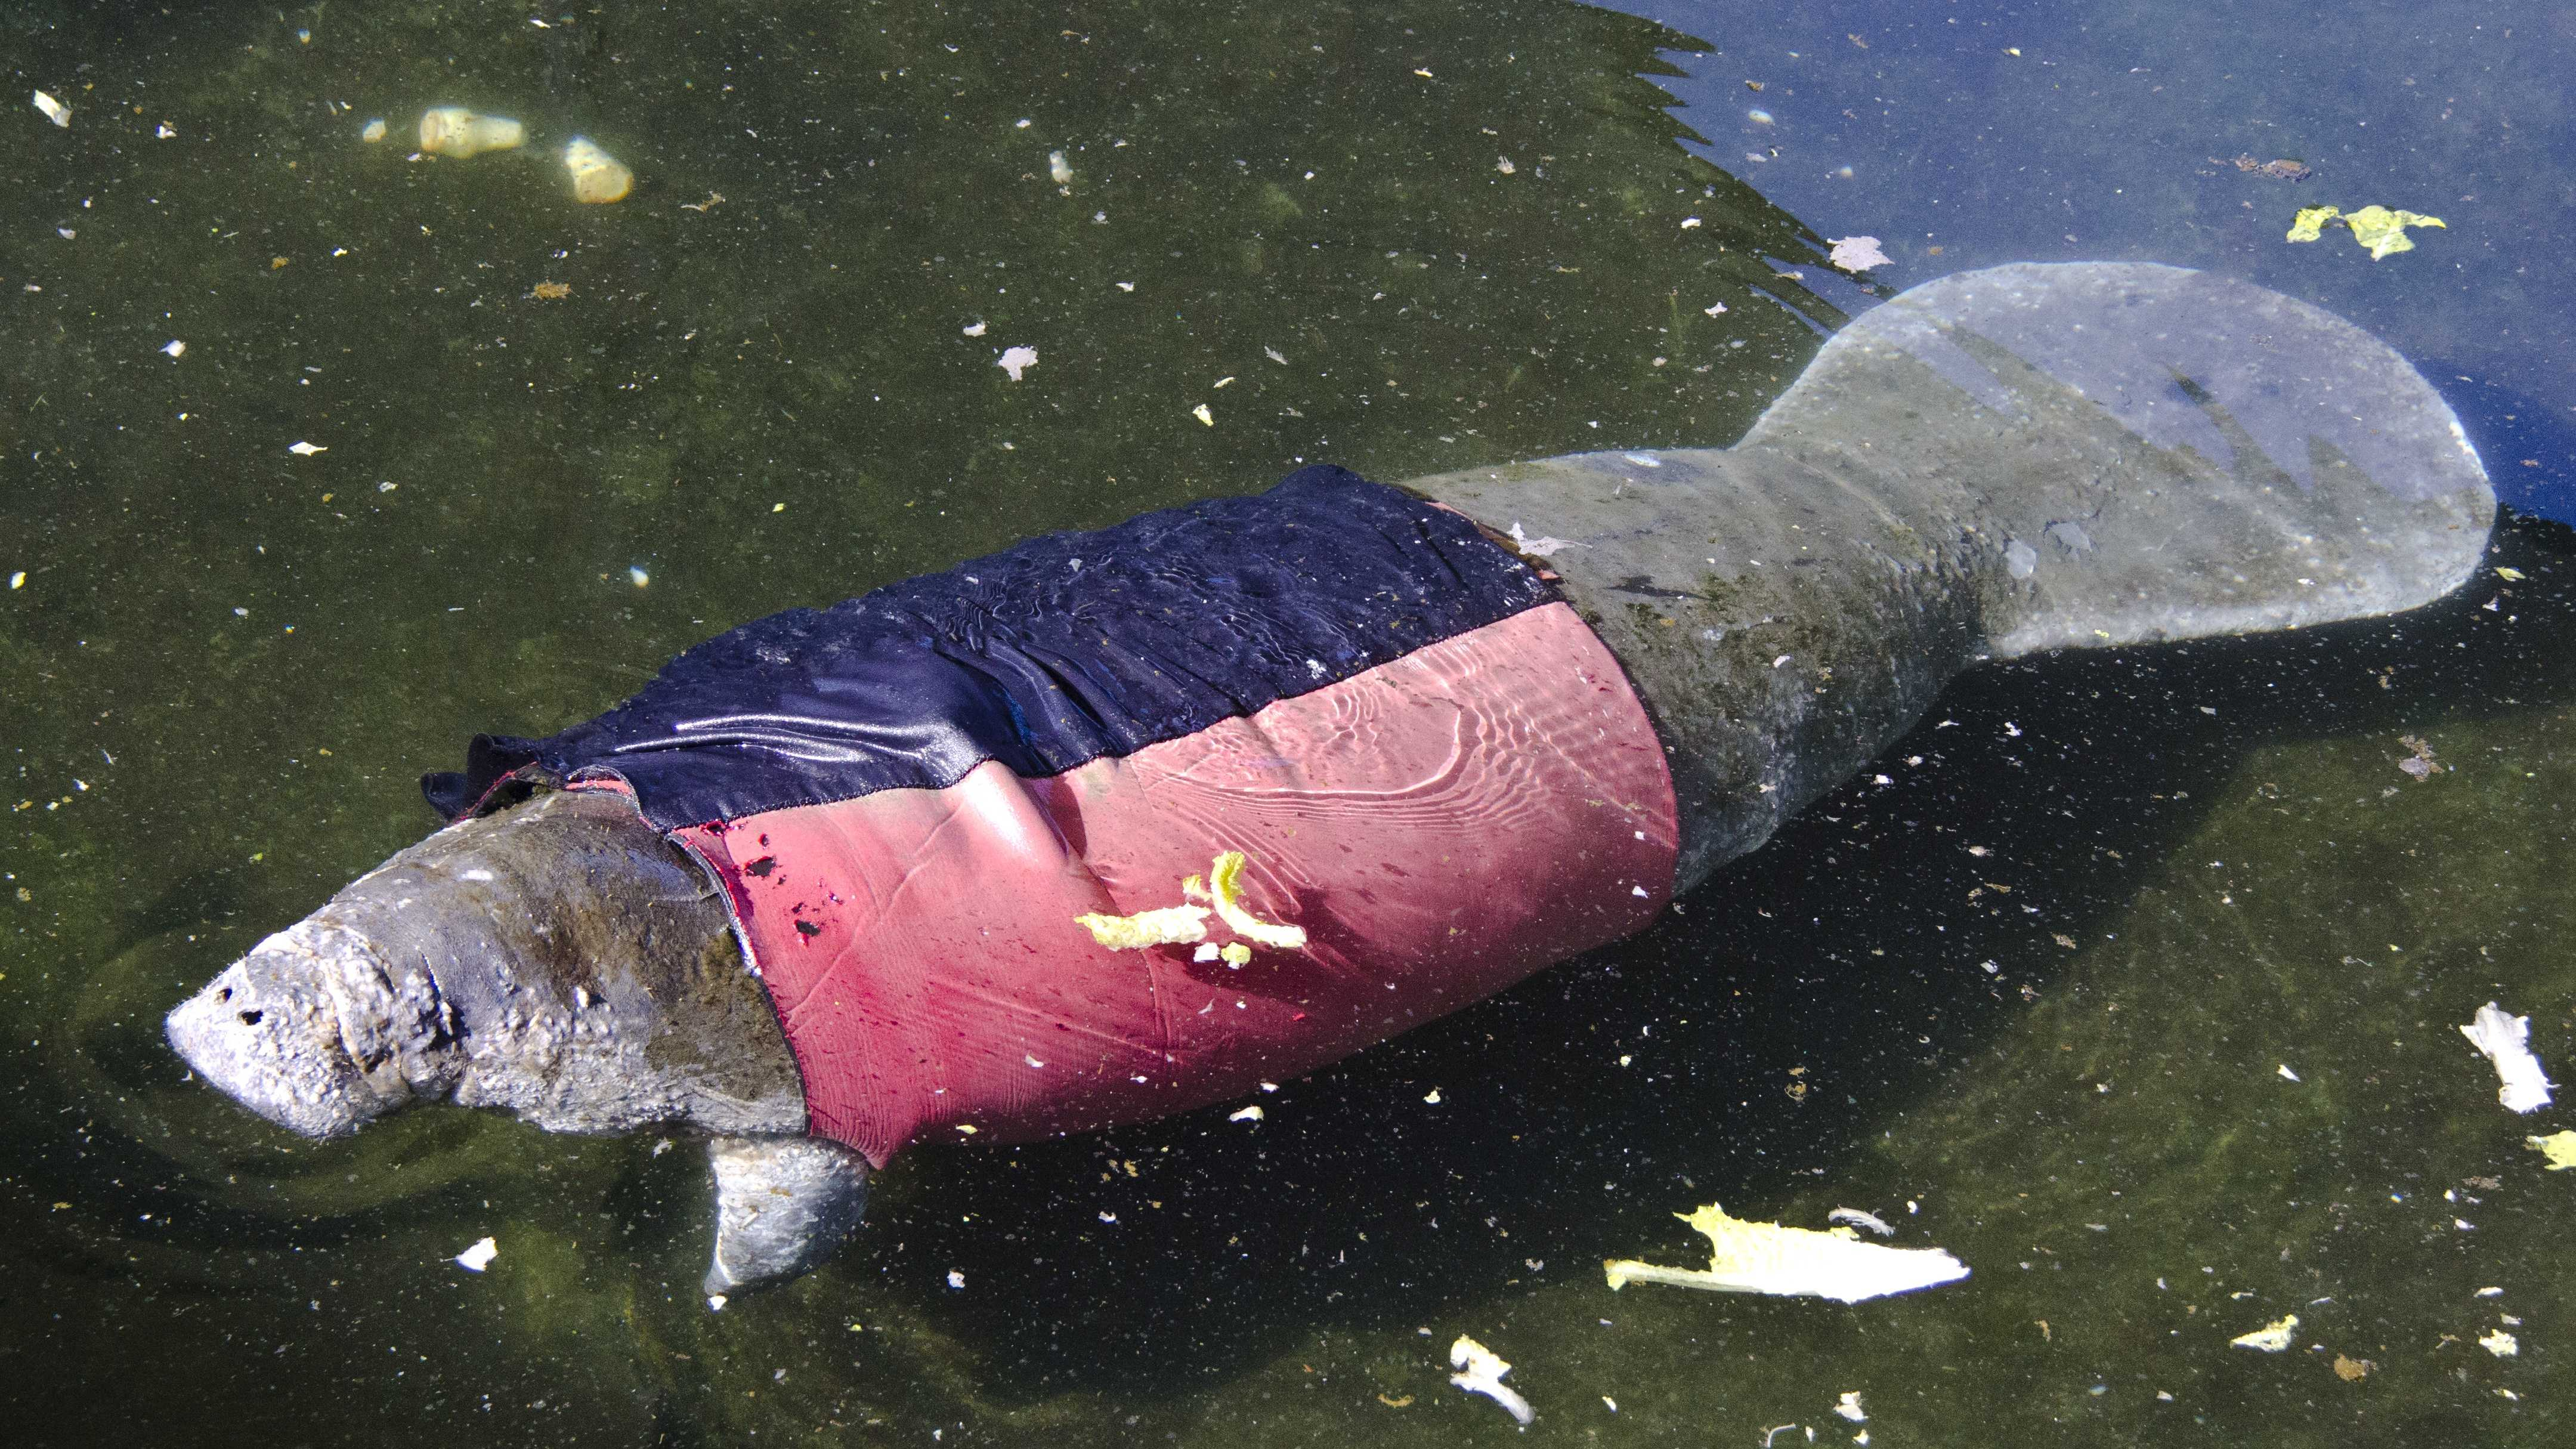 SeaWorld Rescued Manatee